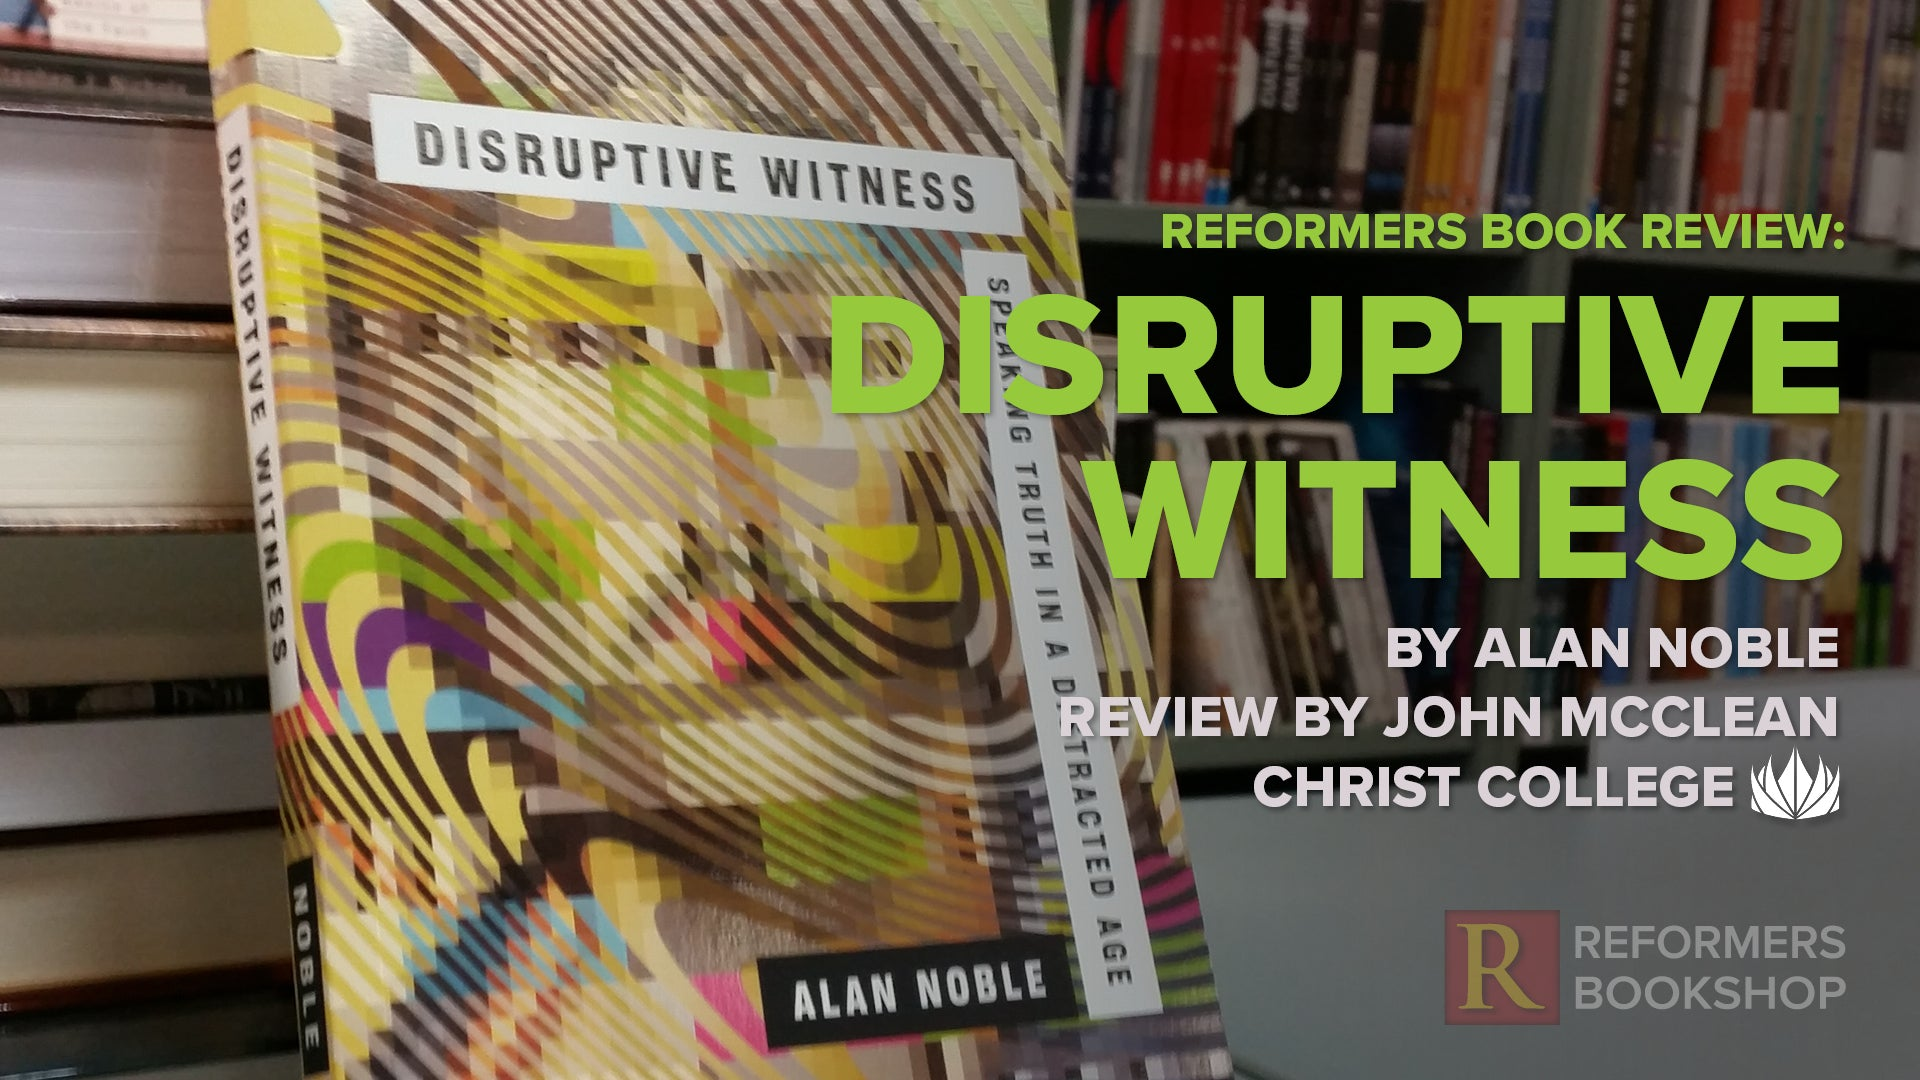 Reformers Book Review: Disruptive Witness -- by Alan Noble -- Review by John McClean, Christ College